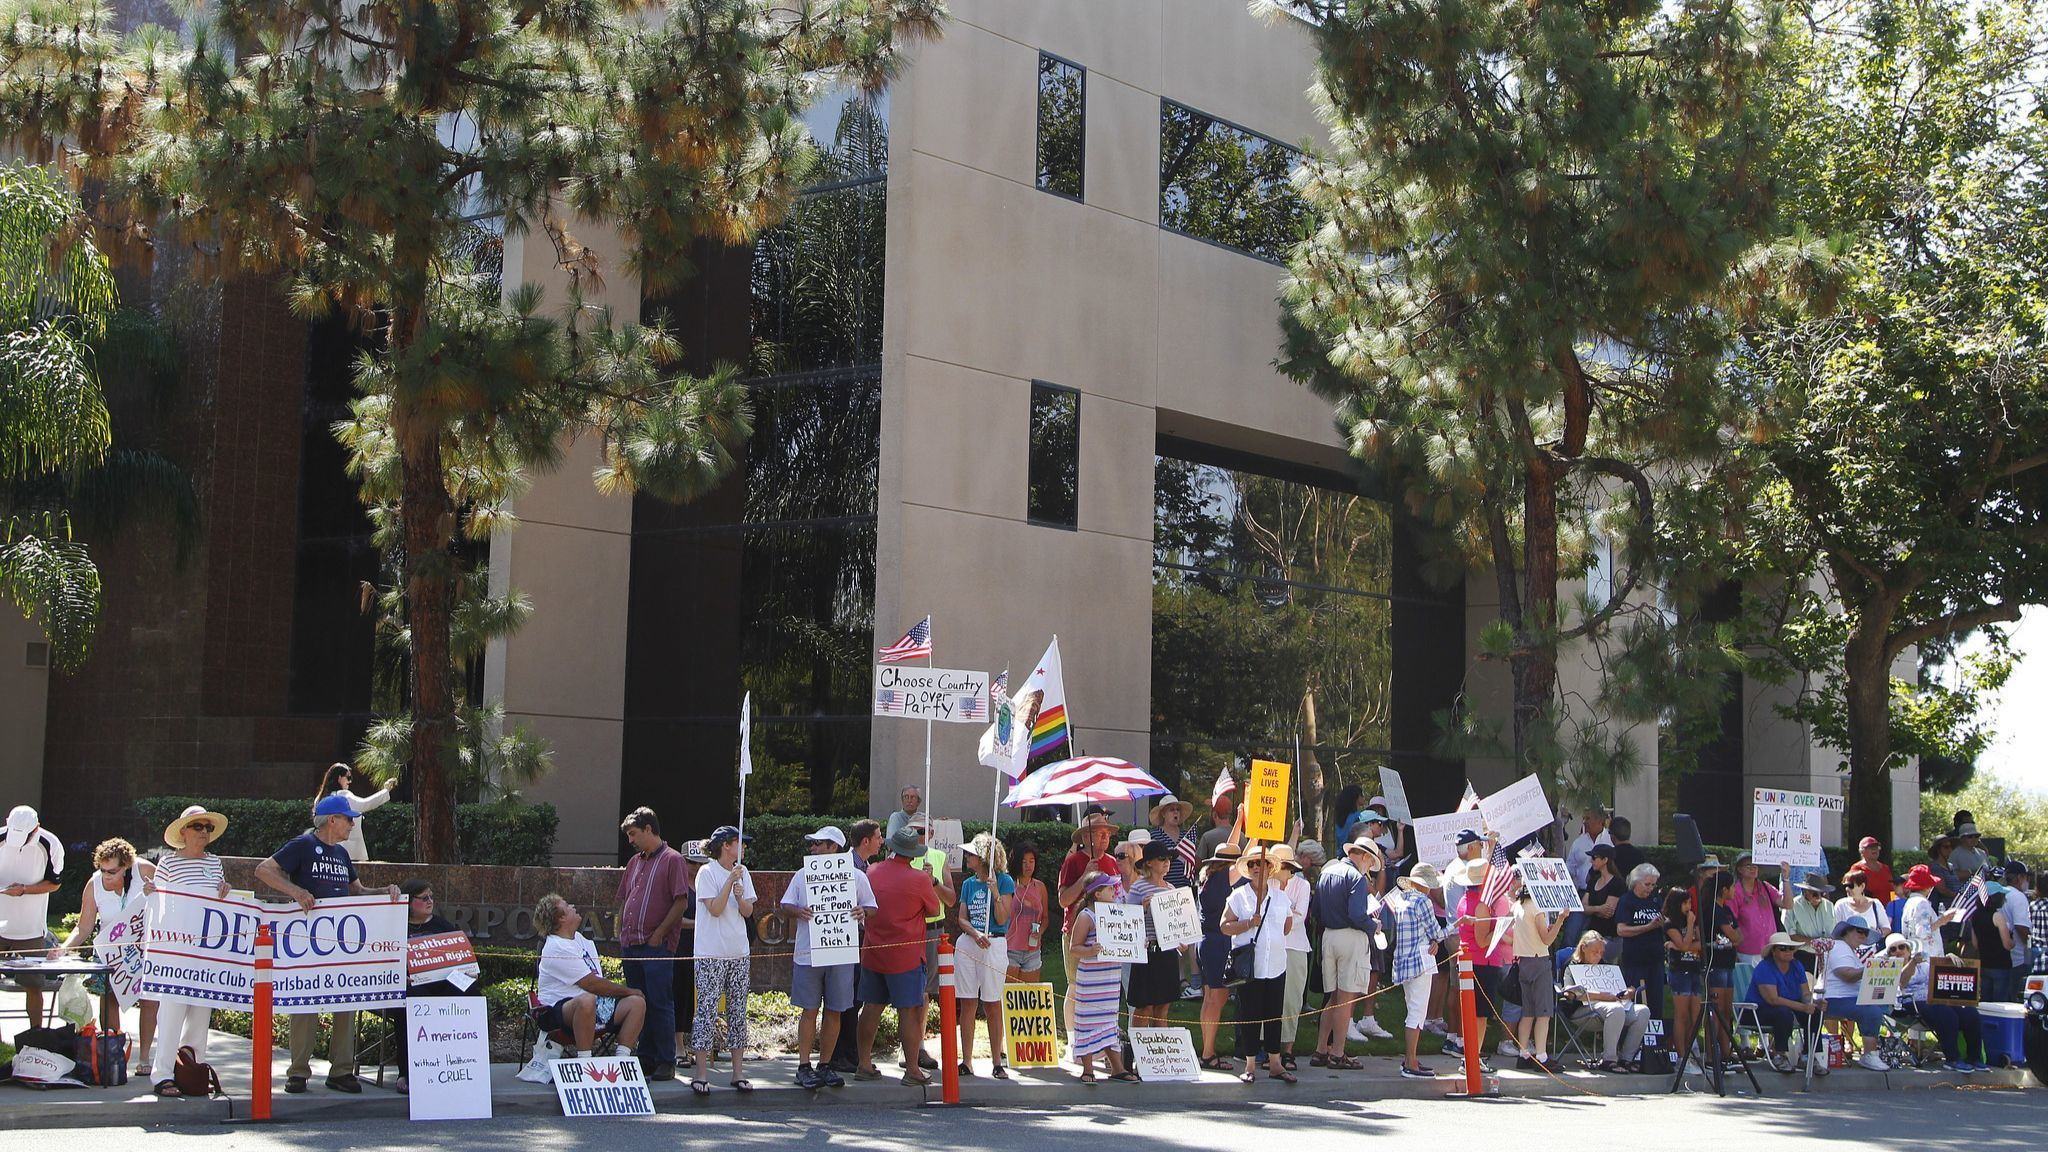 Darrell Issa protests